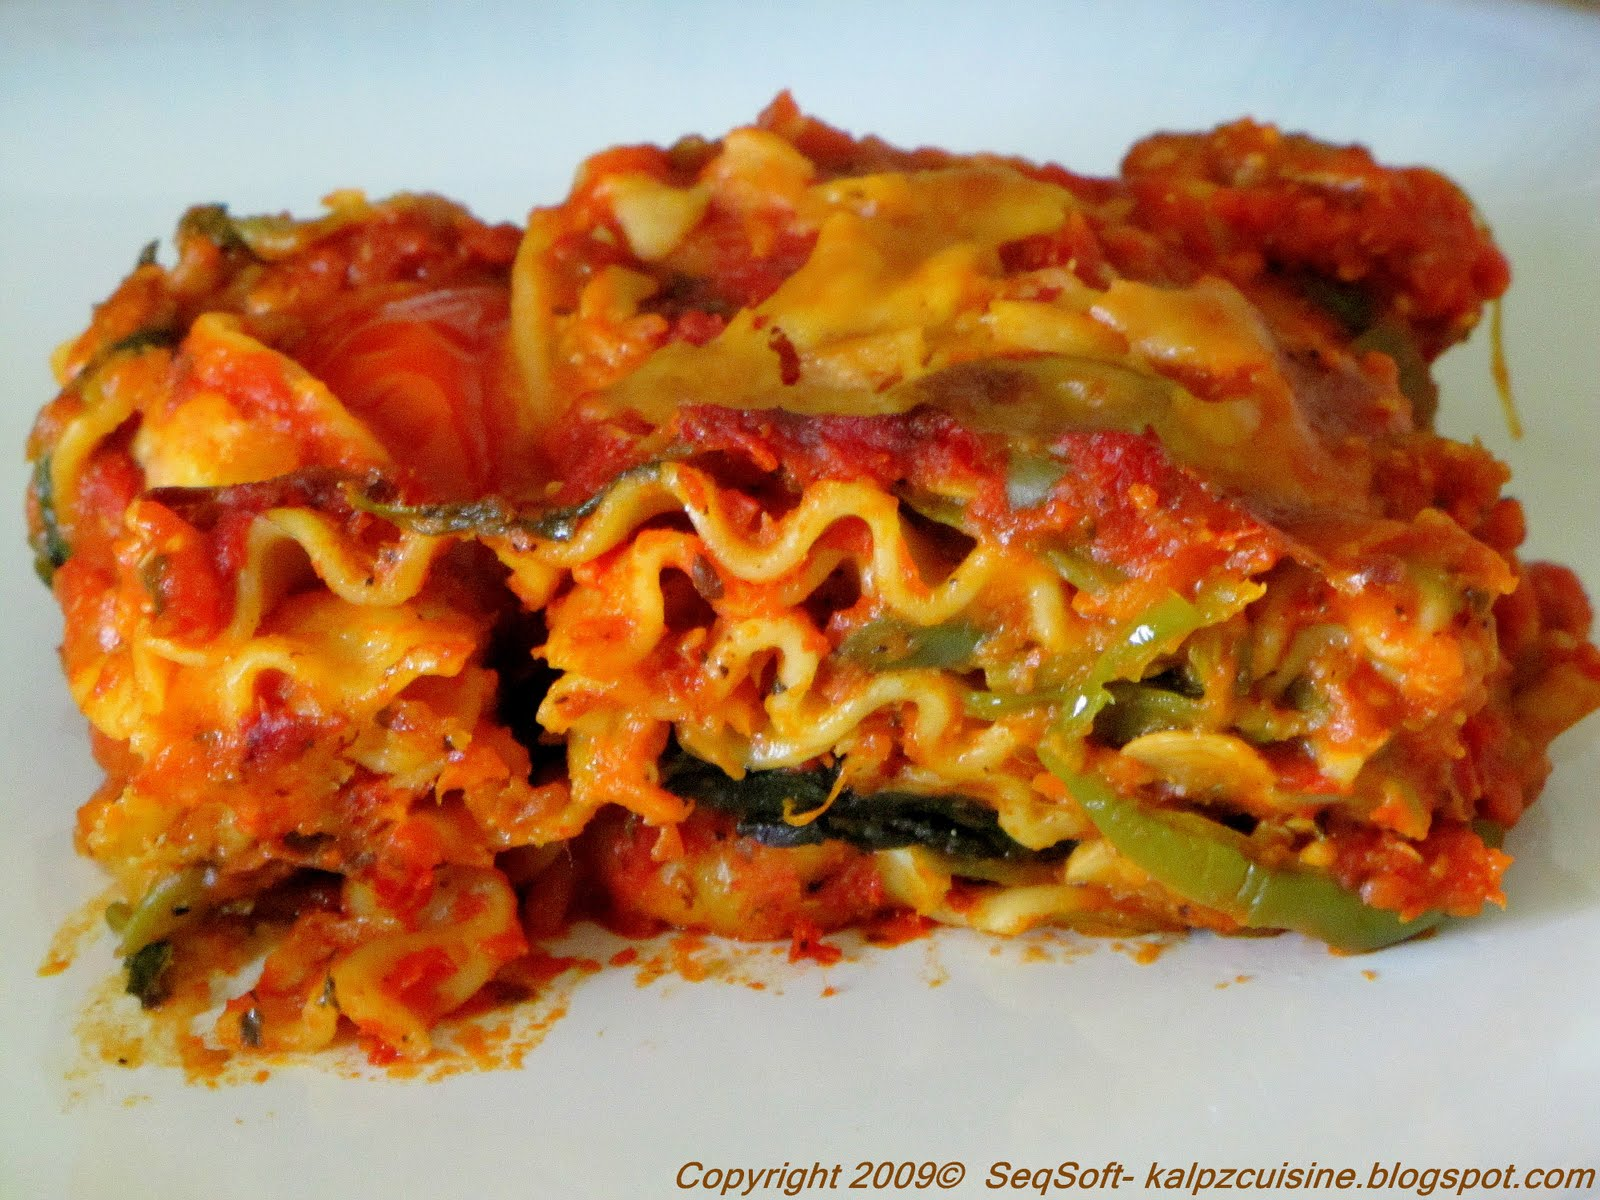 kalpz: Vegetable Lasagna